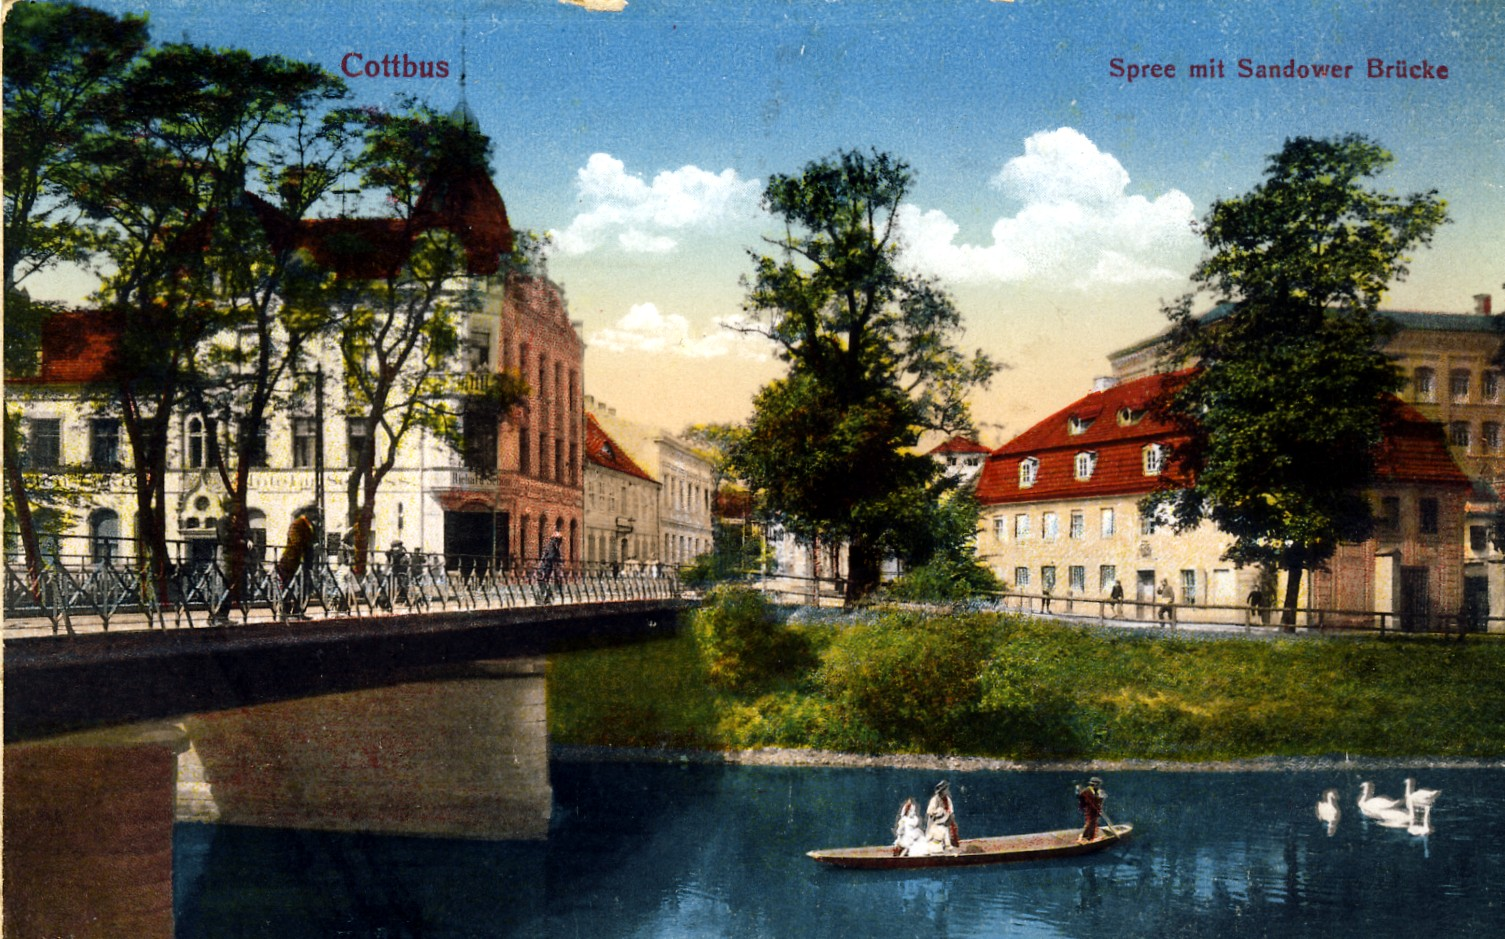 Sandower Brücke in Cottbus